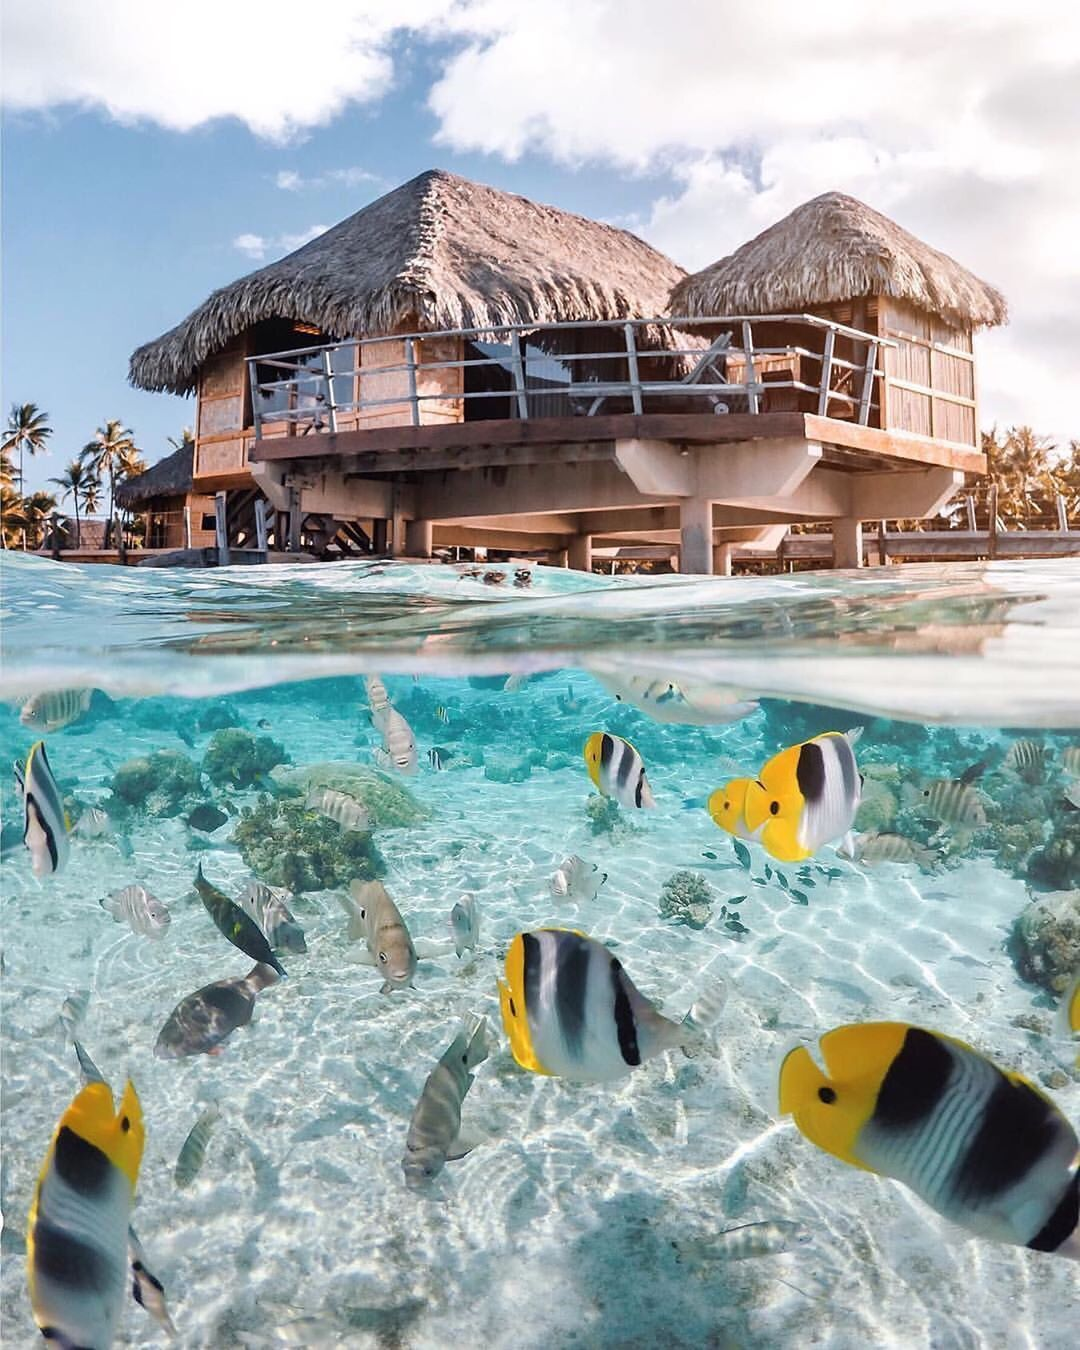 Tahiti is the largest island in French Polynesia the